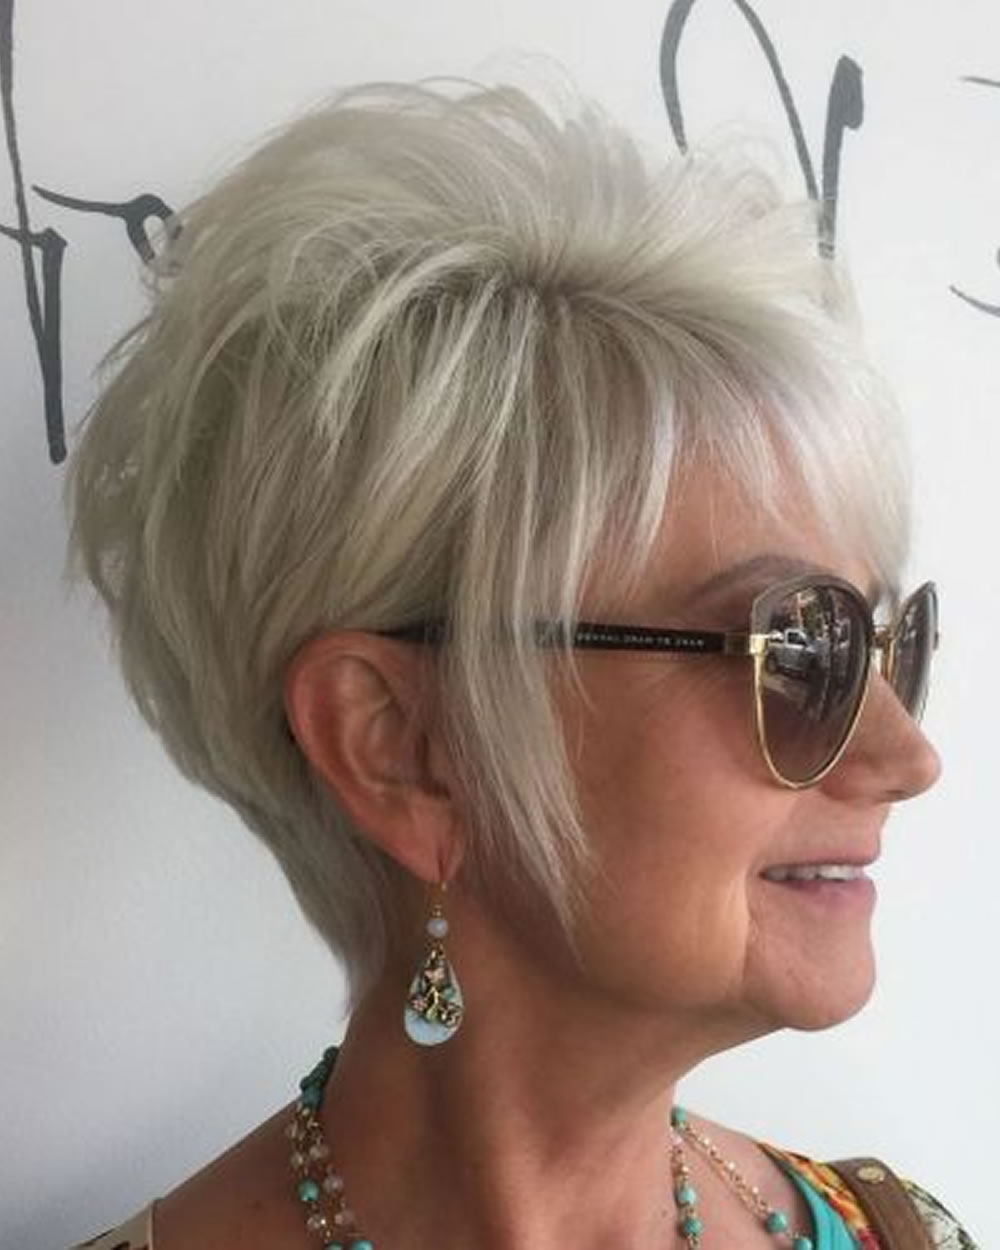 Pixie Short Haircuts For Older Women Over 50 & 2018 2019 Short In Blonde Pixie Haircuts For Women 50+ (View 16 of 20)